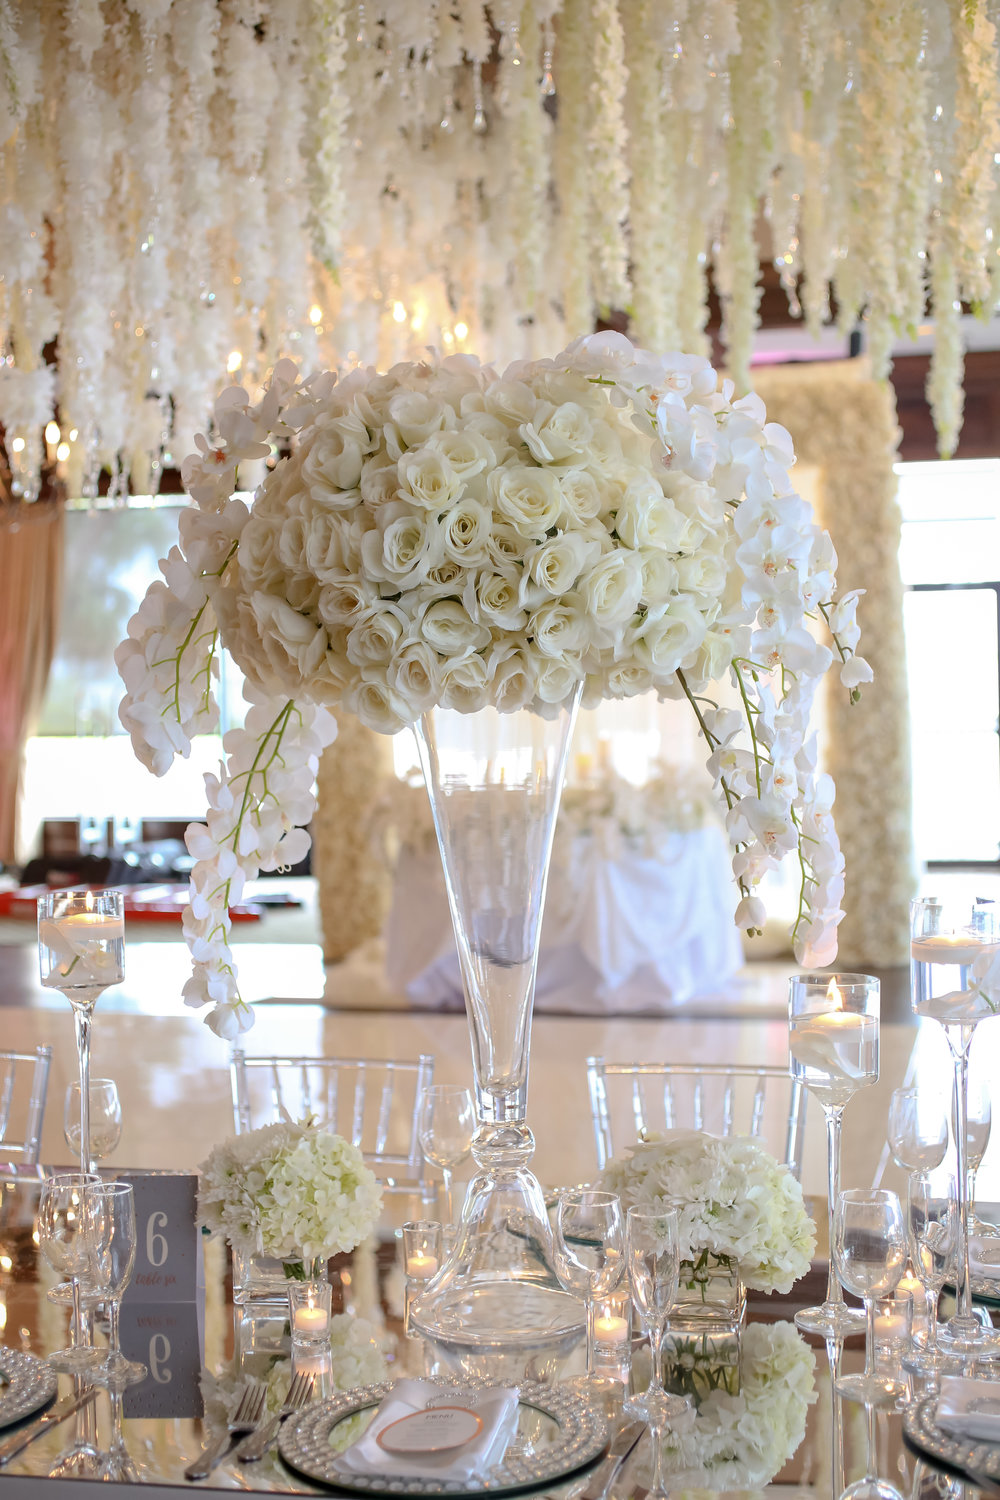 Ornate vases topped with fluffy hydrangea, rose, and dripping orchids sat amongst floating candles and crystal stemware.